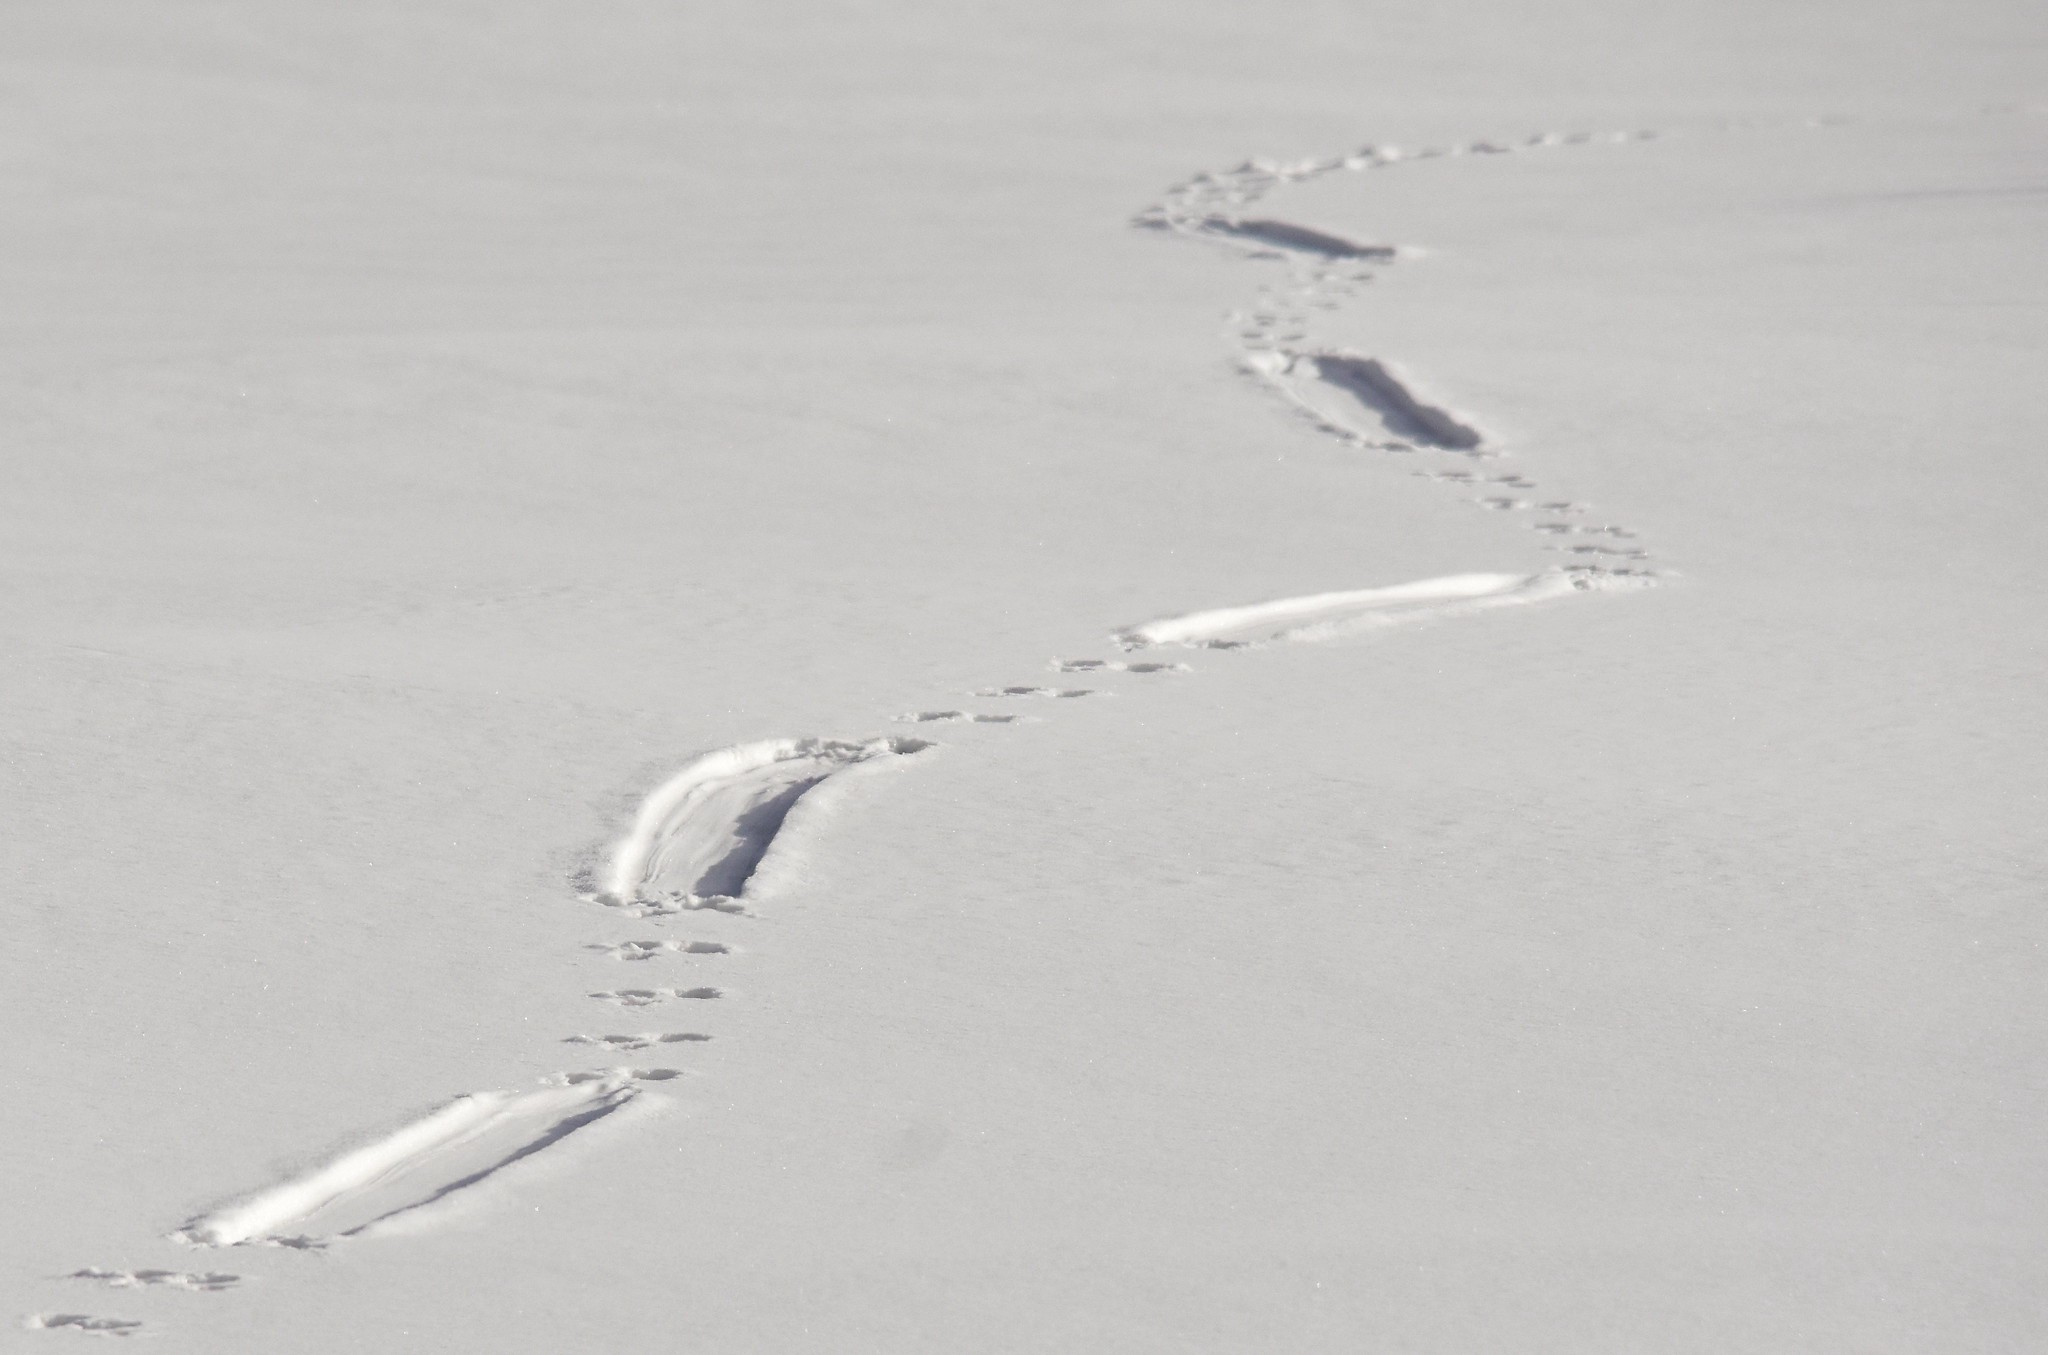 North American river otter tracks in the snow